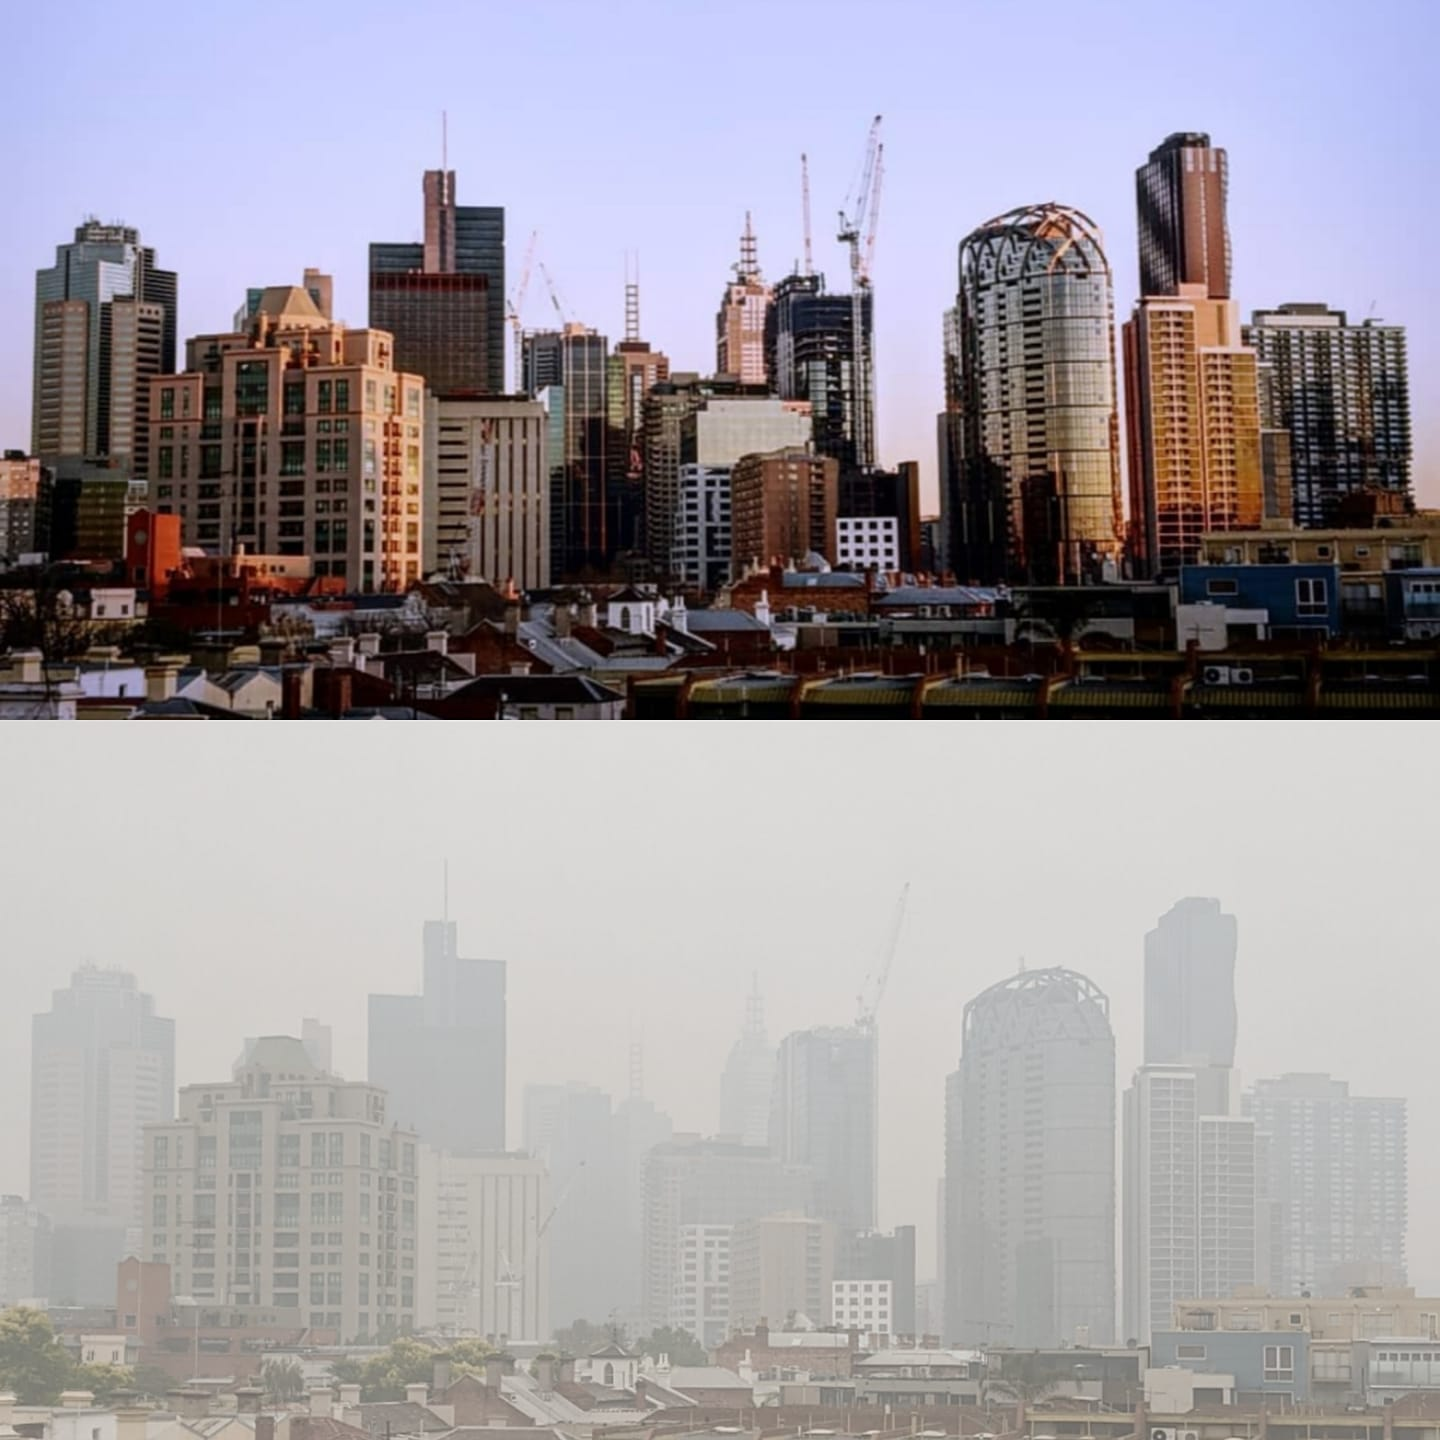 Two images comparing Melbourne with air pollution and without by Patrick O'Brien